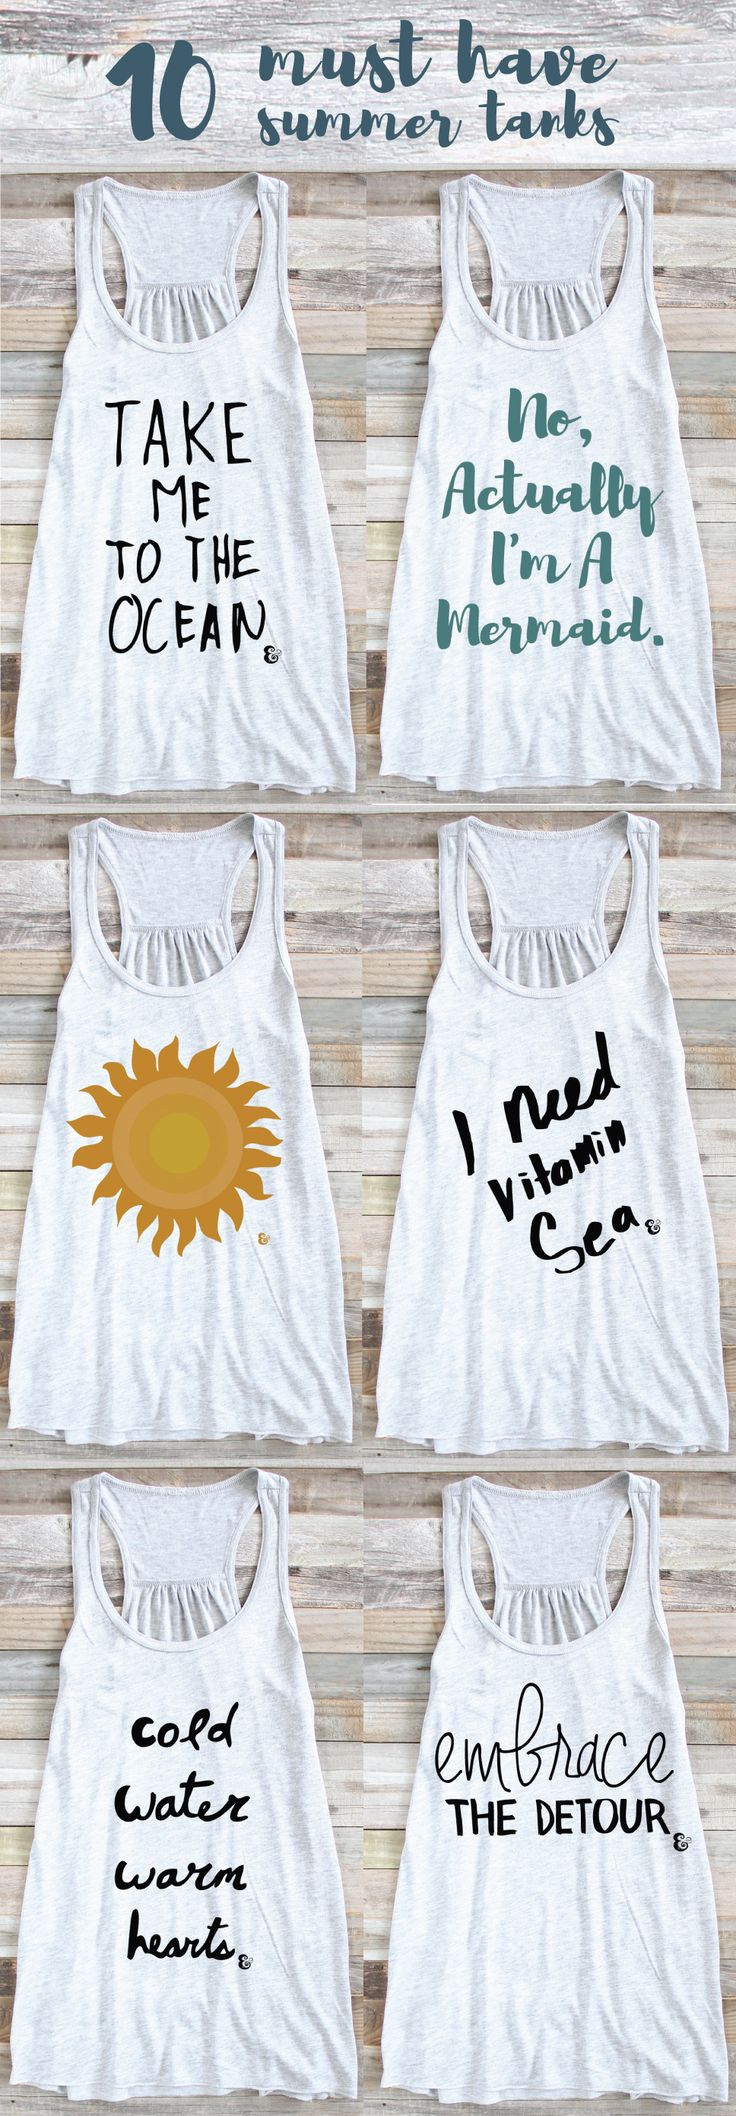 10 Must Have Summer Tank Tops - Beach Tank Tops - Summer Inspiration